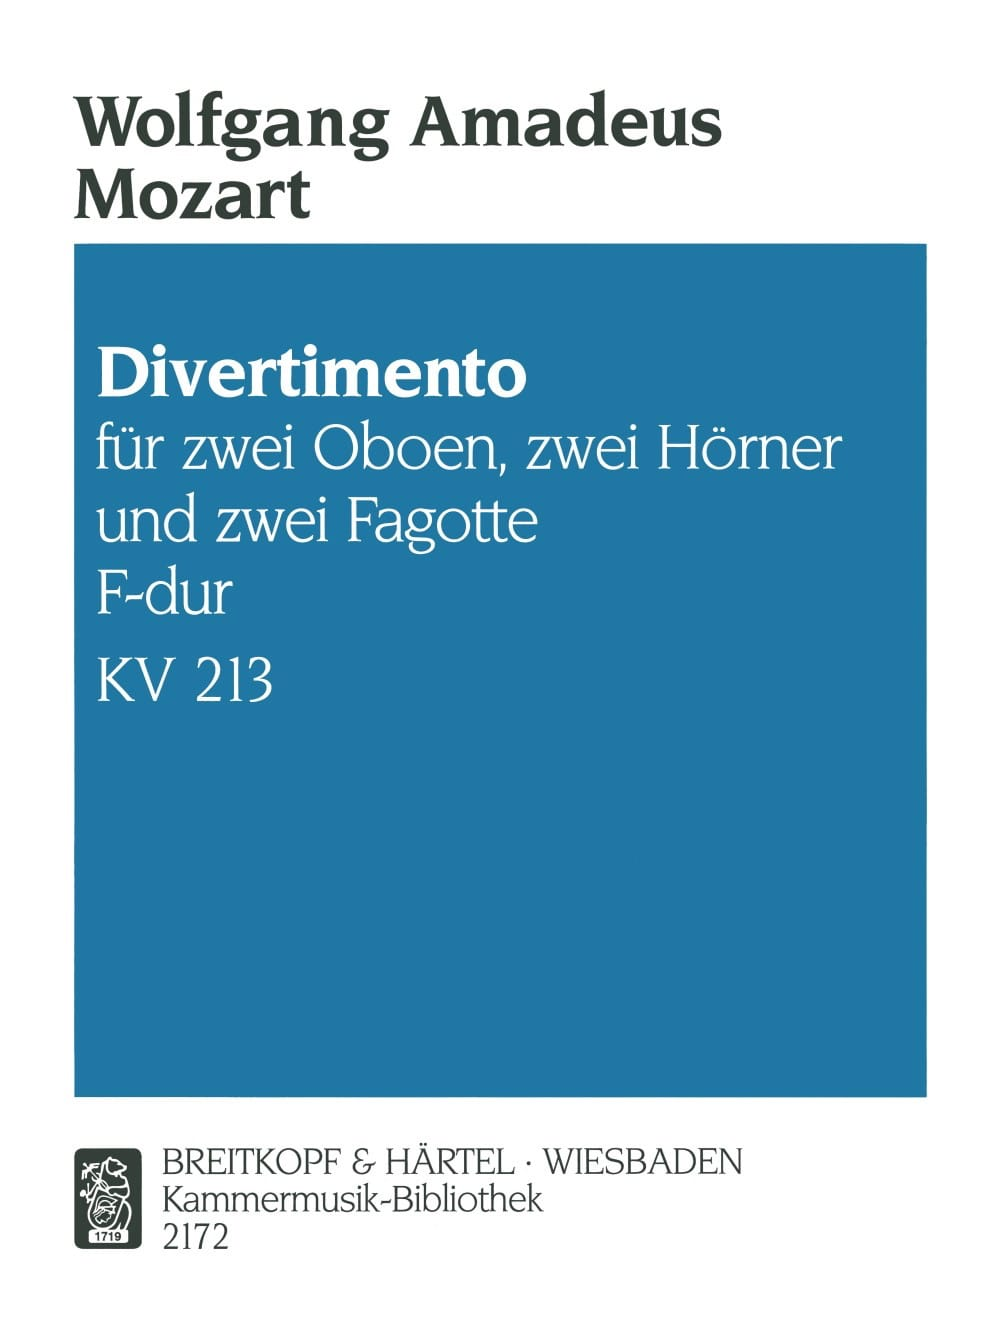 MOZART - Divertimento F-Dur KV 213 - Bläsersextett - Stimmen - Partition - di-arezzo.co.uk